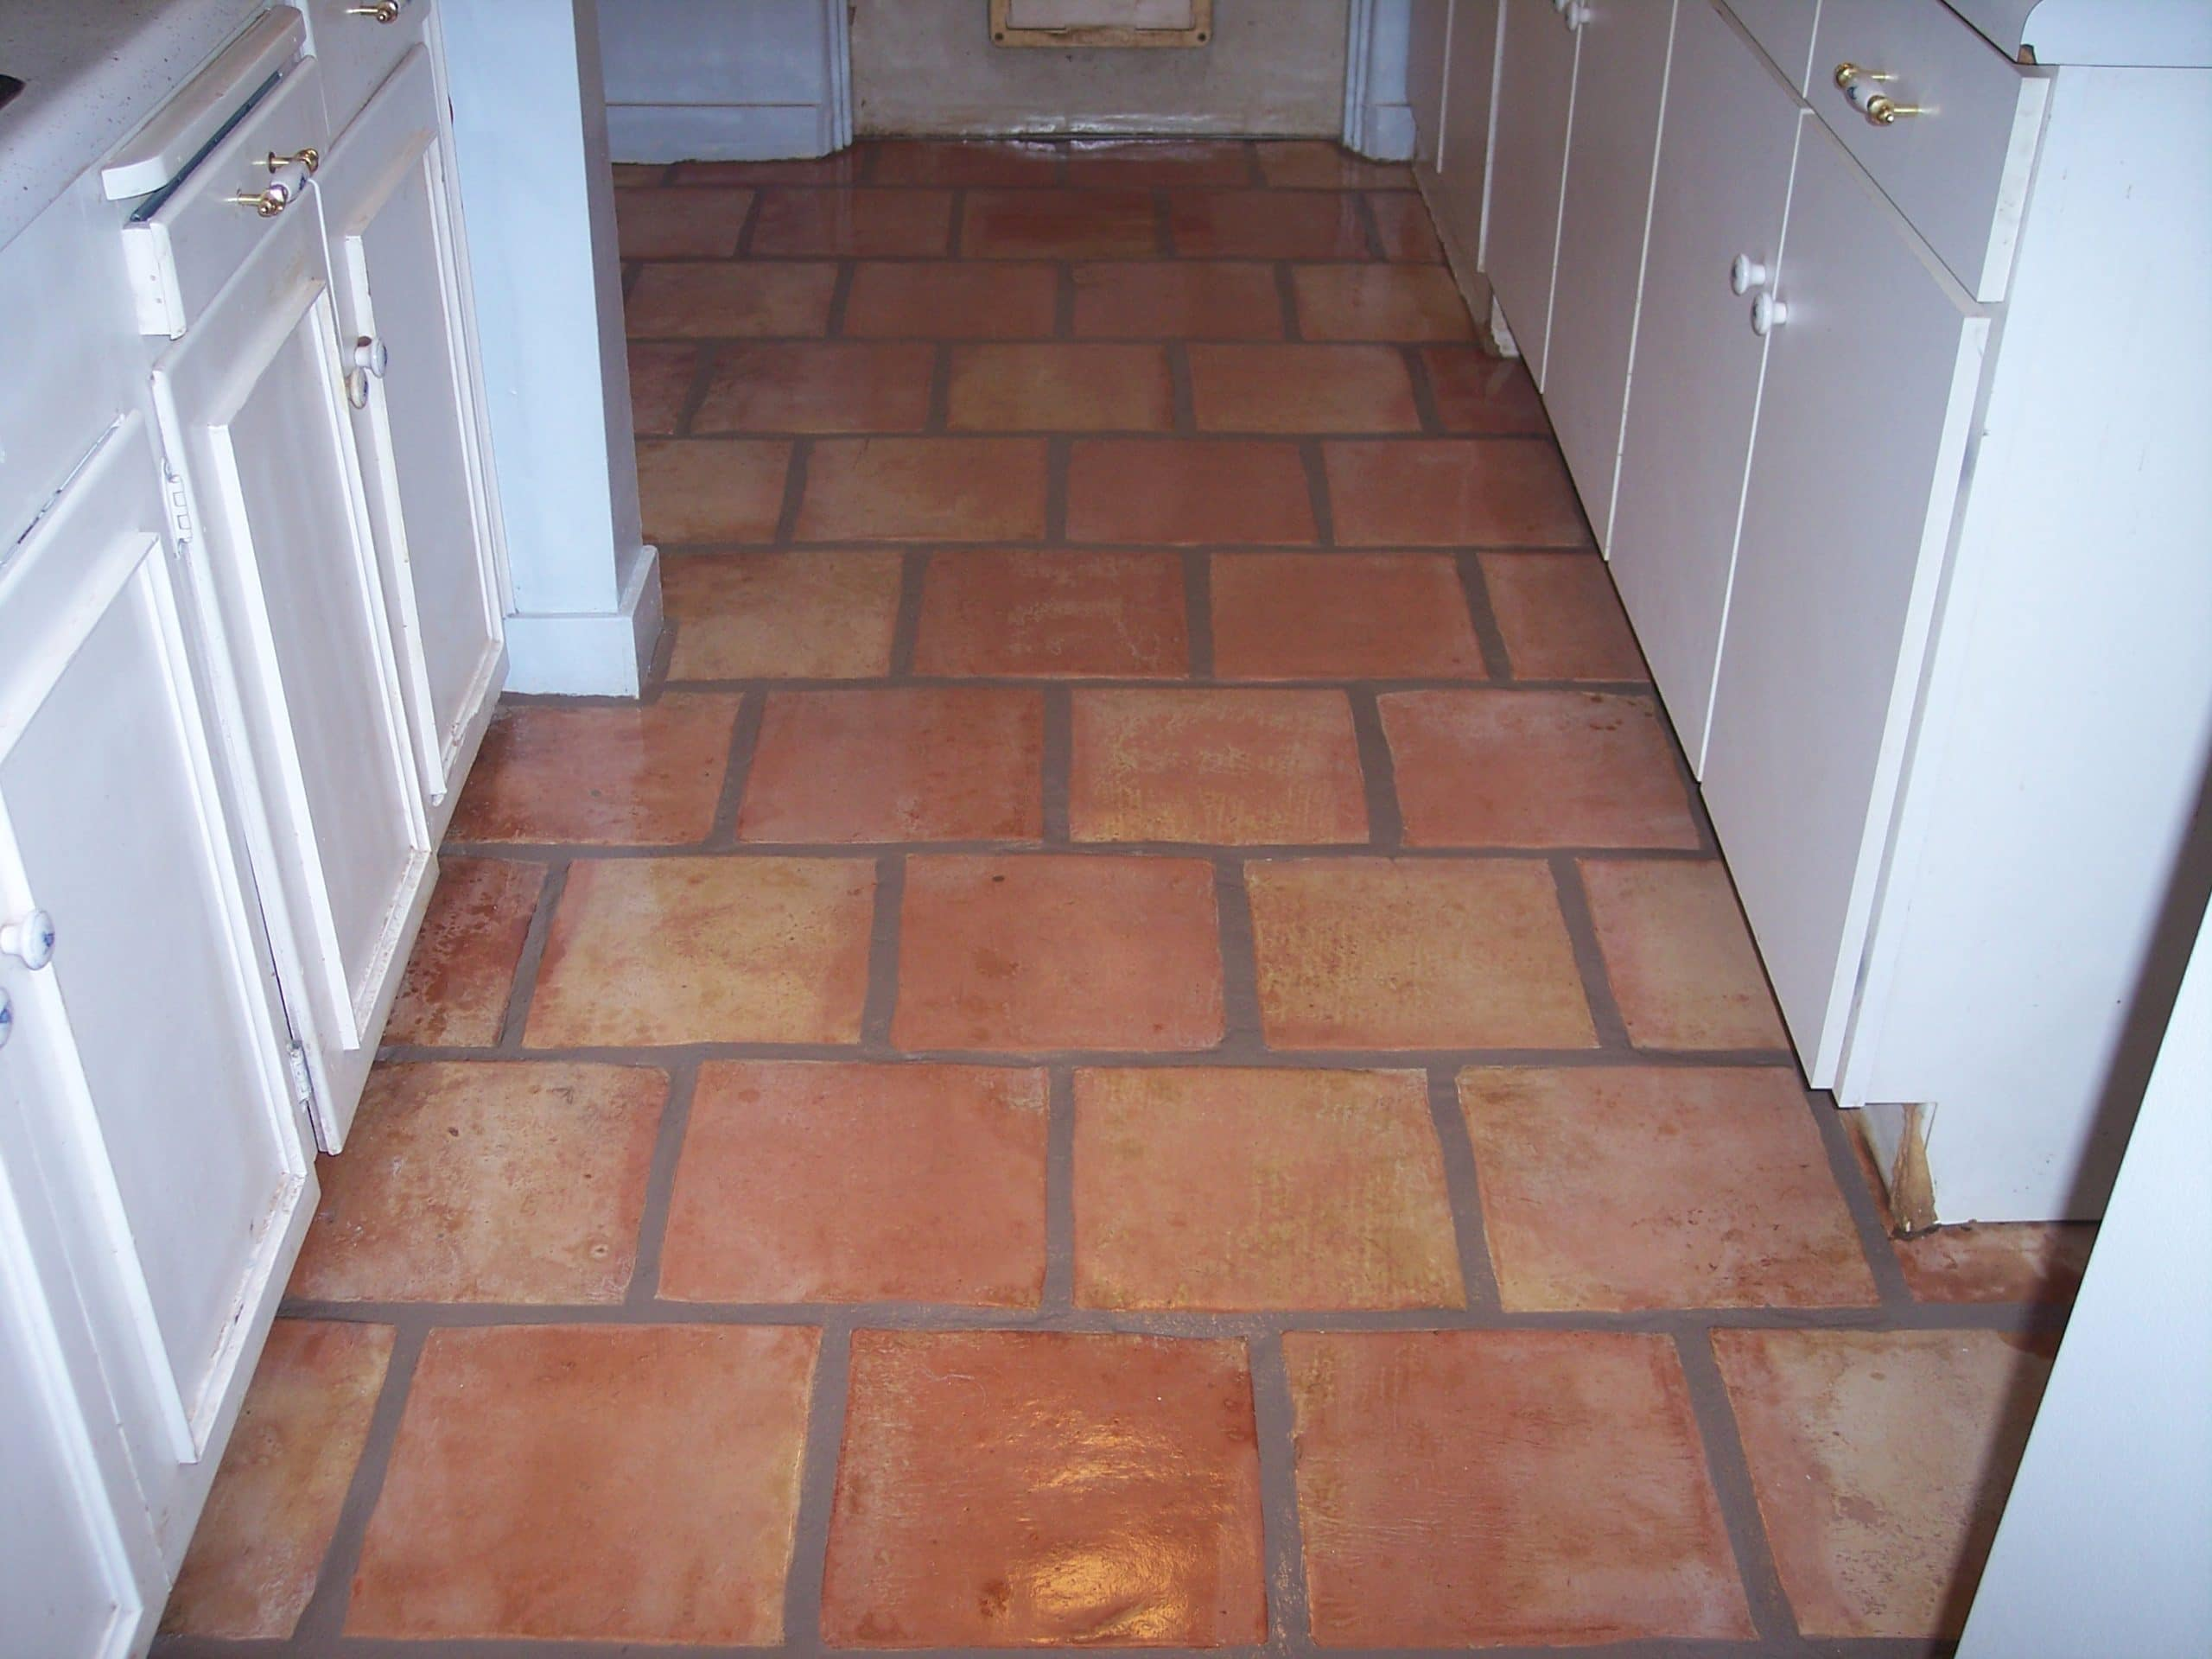 Rode Vloertegels Mexican Tile Cleaning Desert Tile And Grout Care